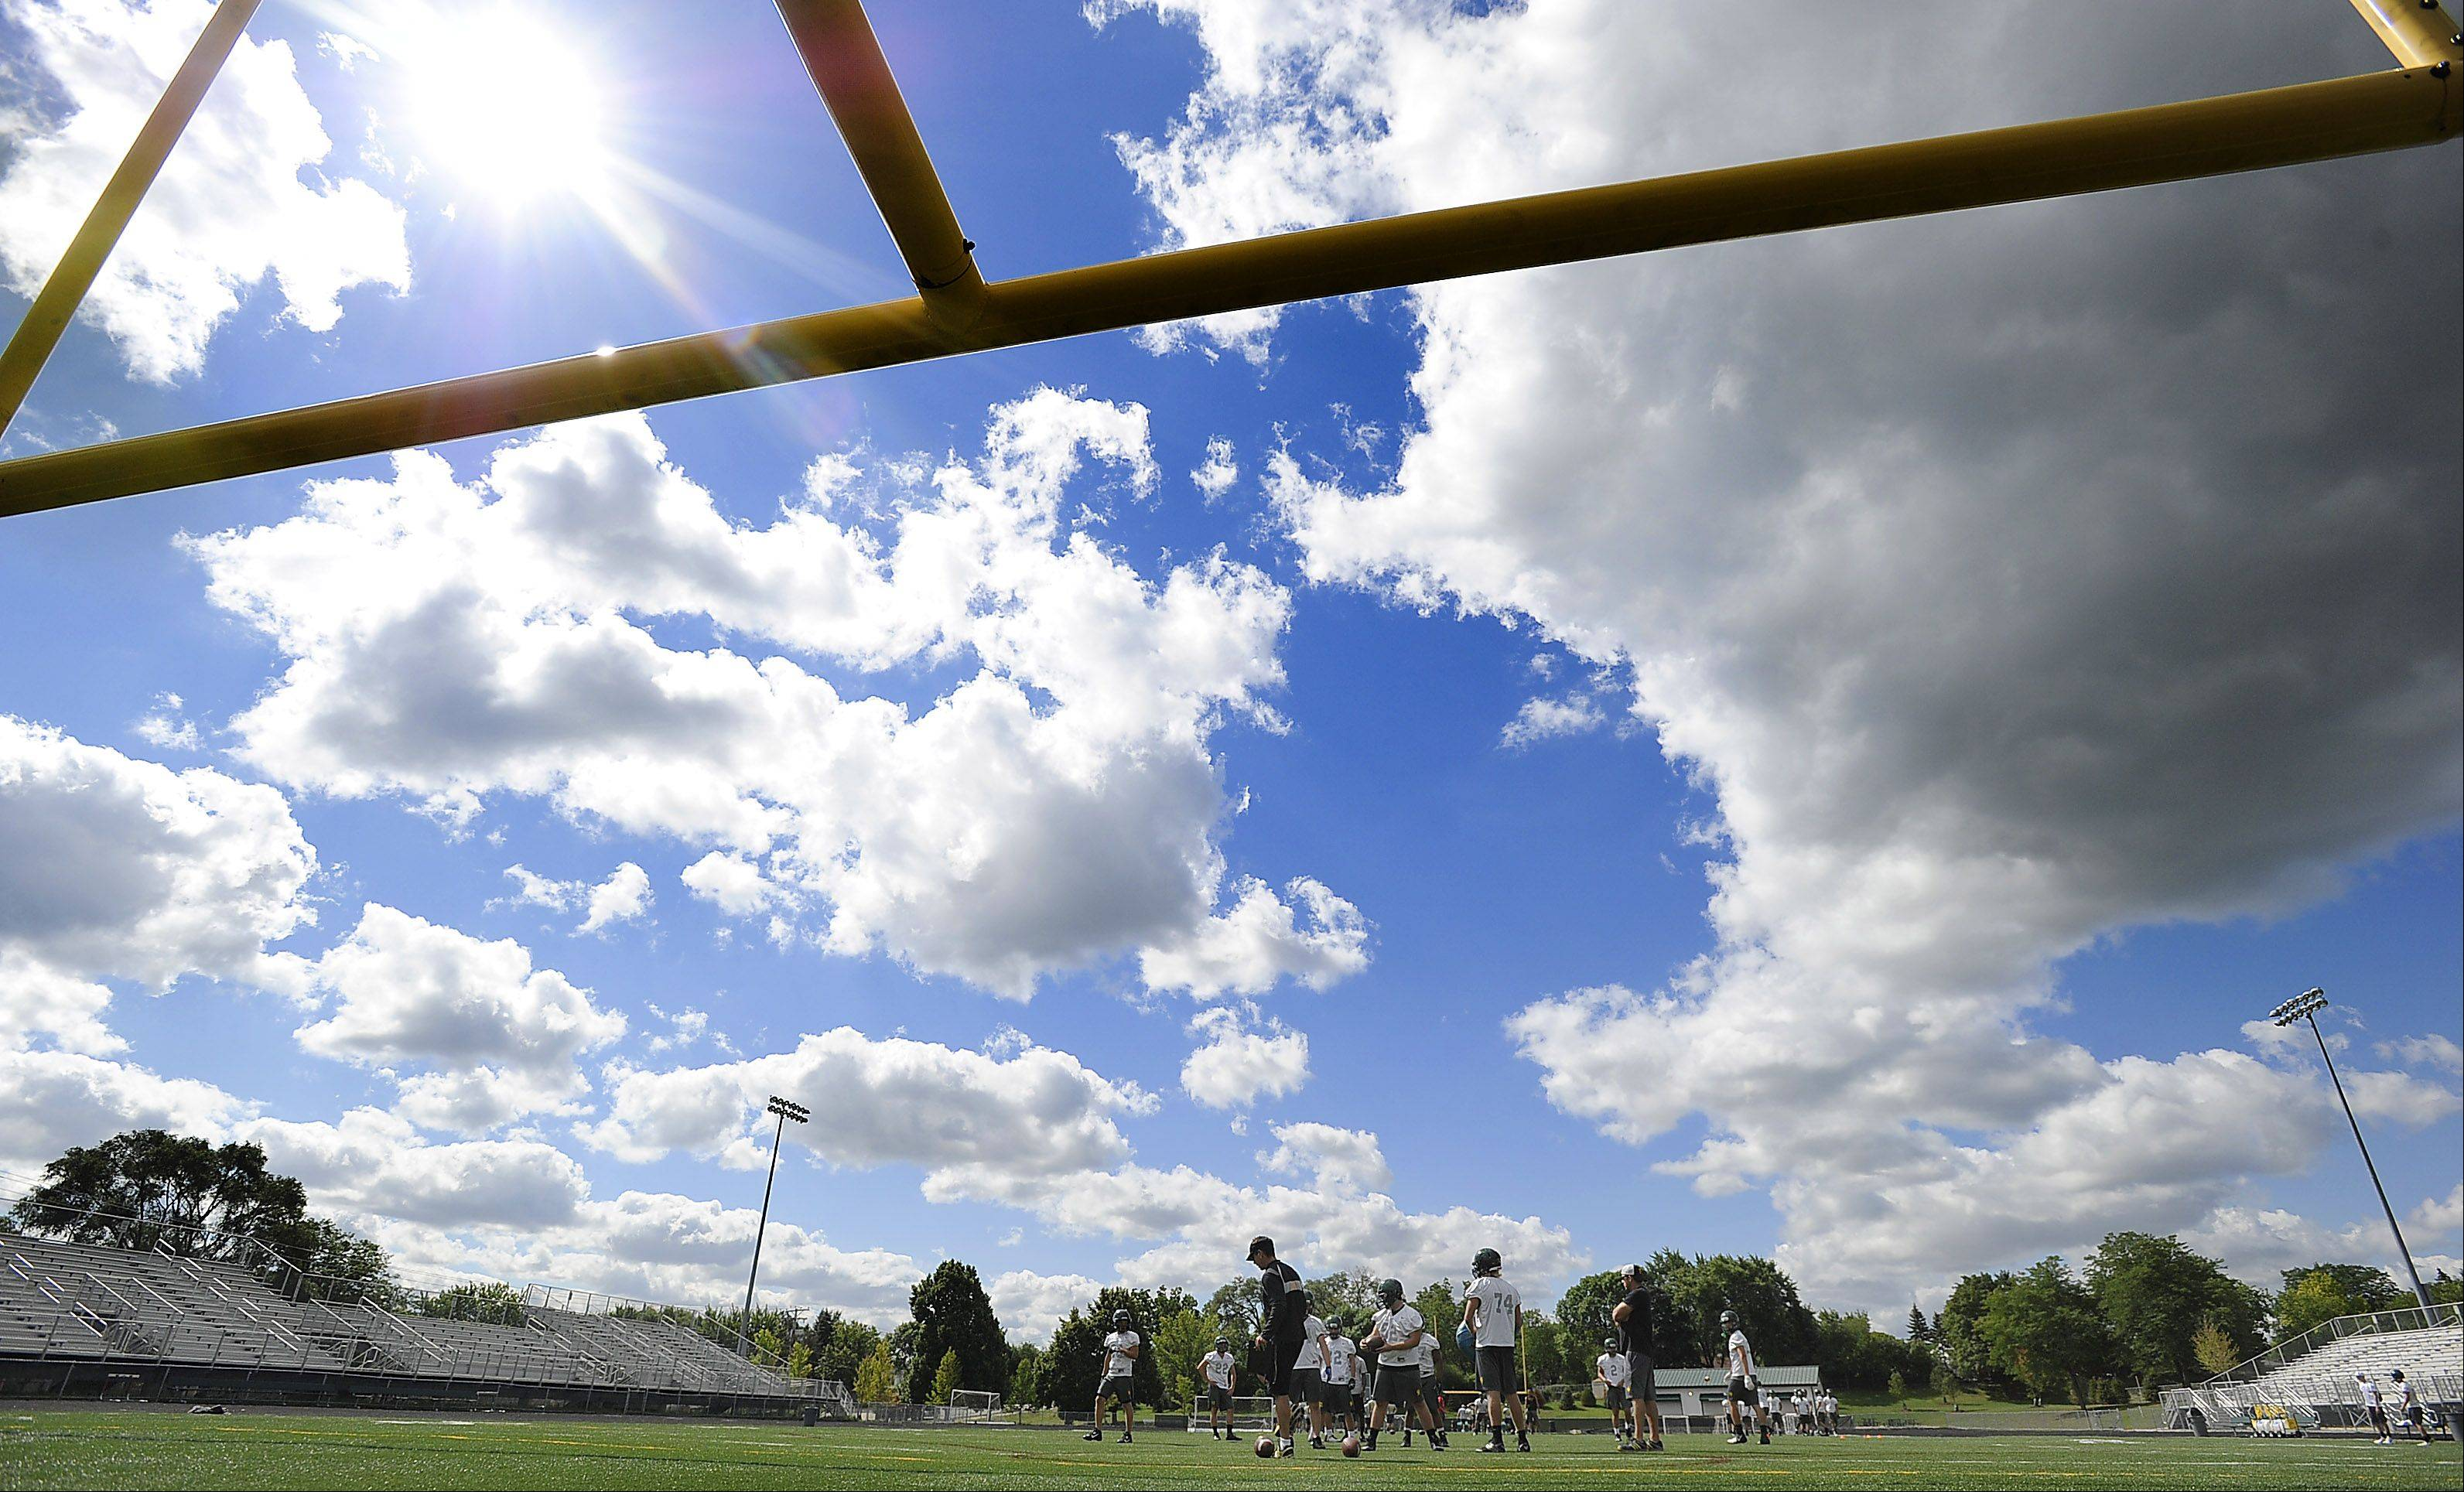 The sun shines brightly on the first day of football practice at Fremd High School.